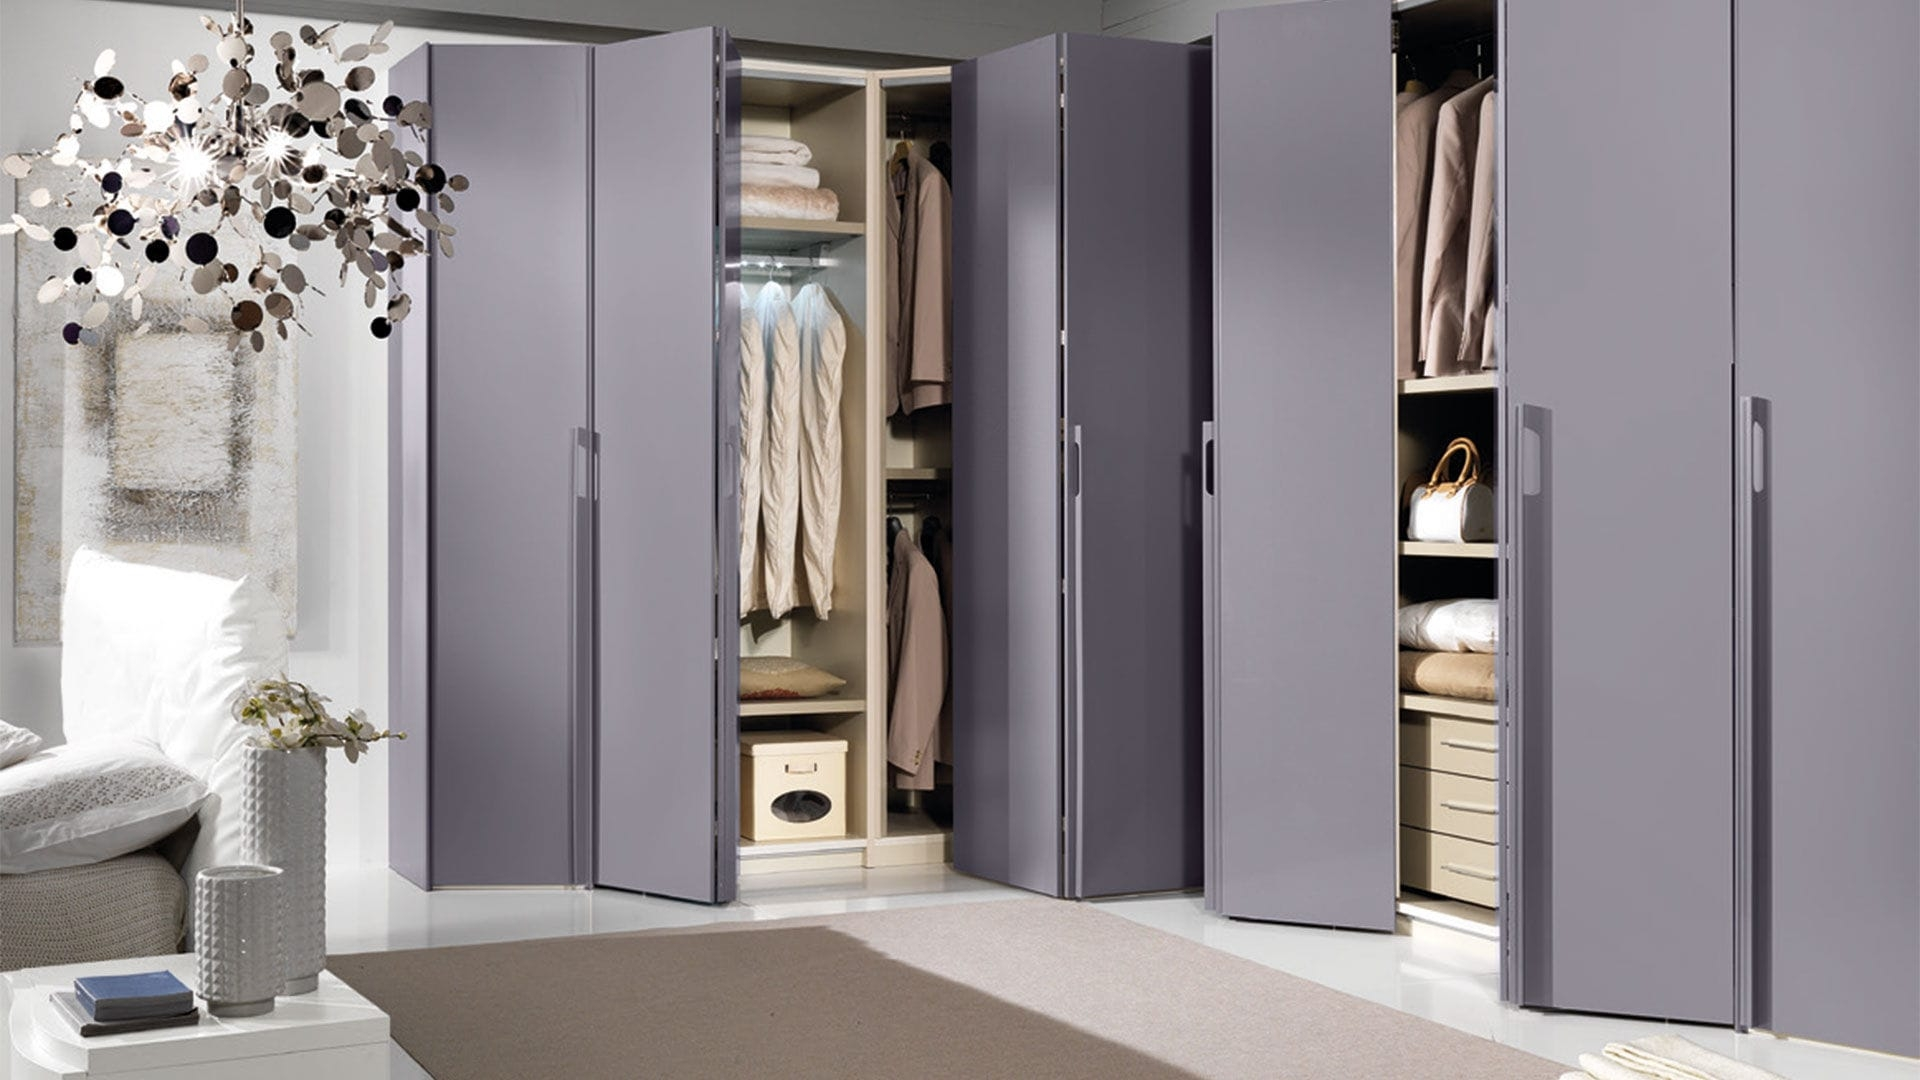 Corner Wardrobe Contemporary Lacquered Wood Folding Door Throughout Folding Door Wardrobes (View 4 of 25)